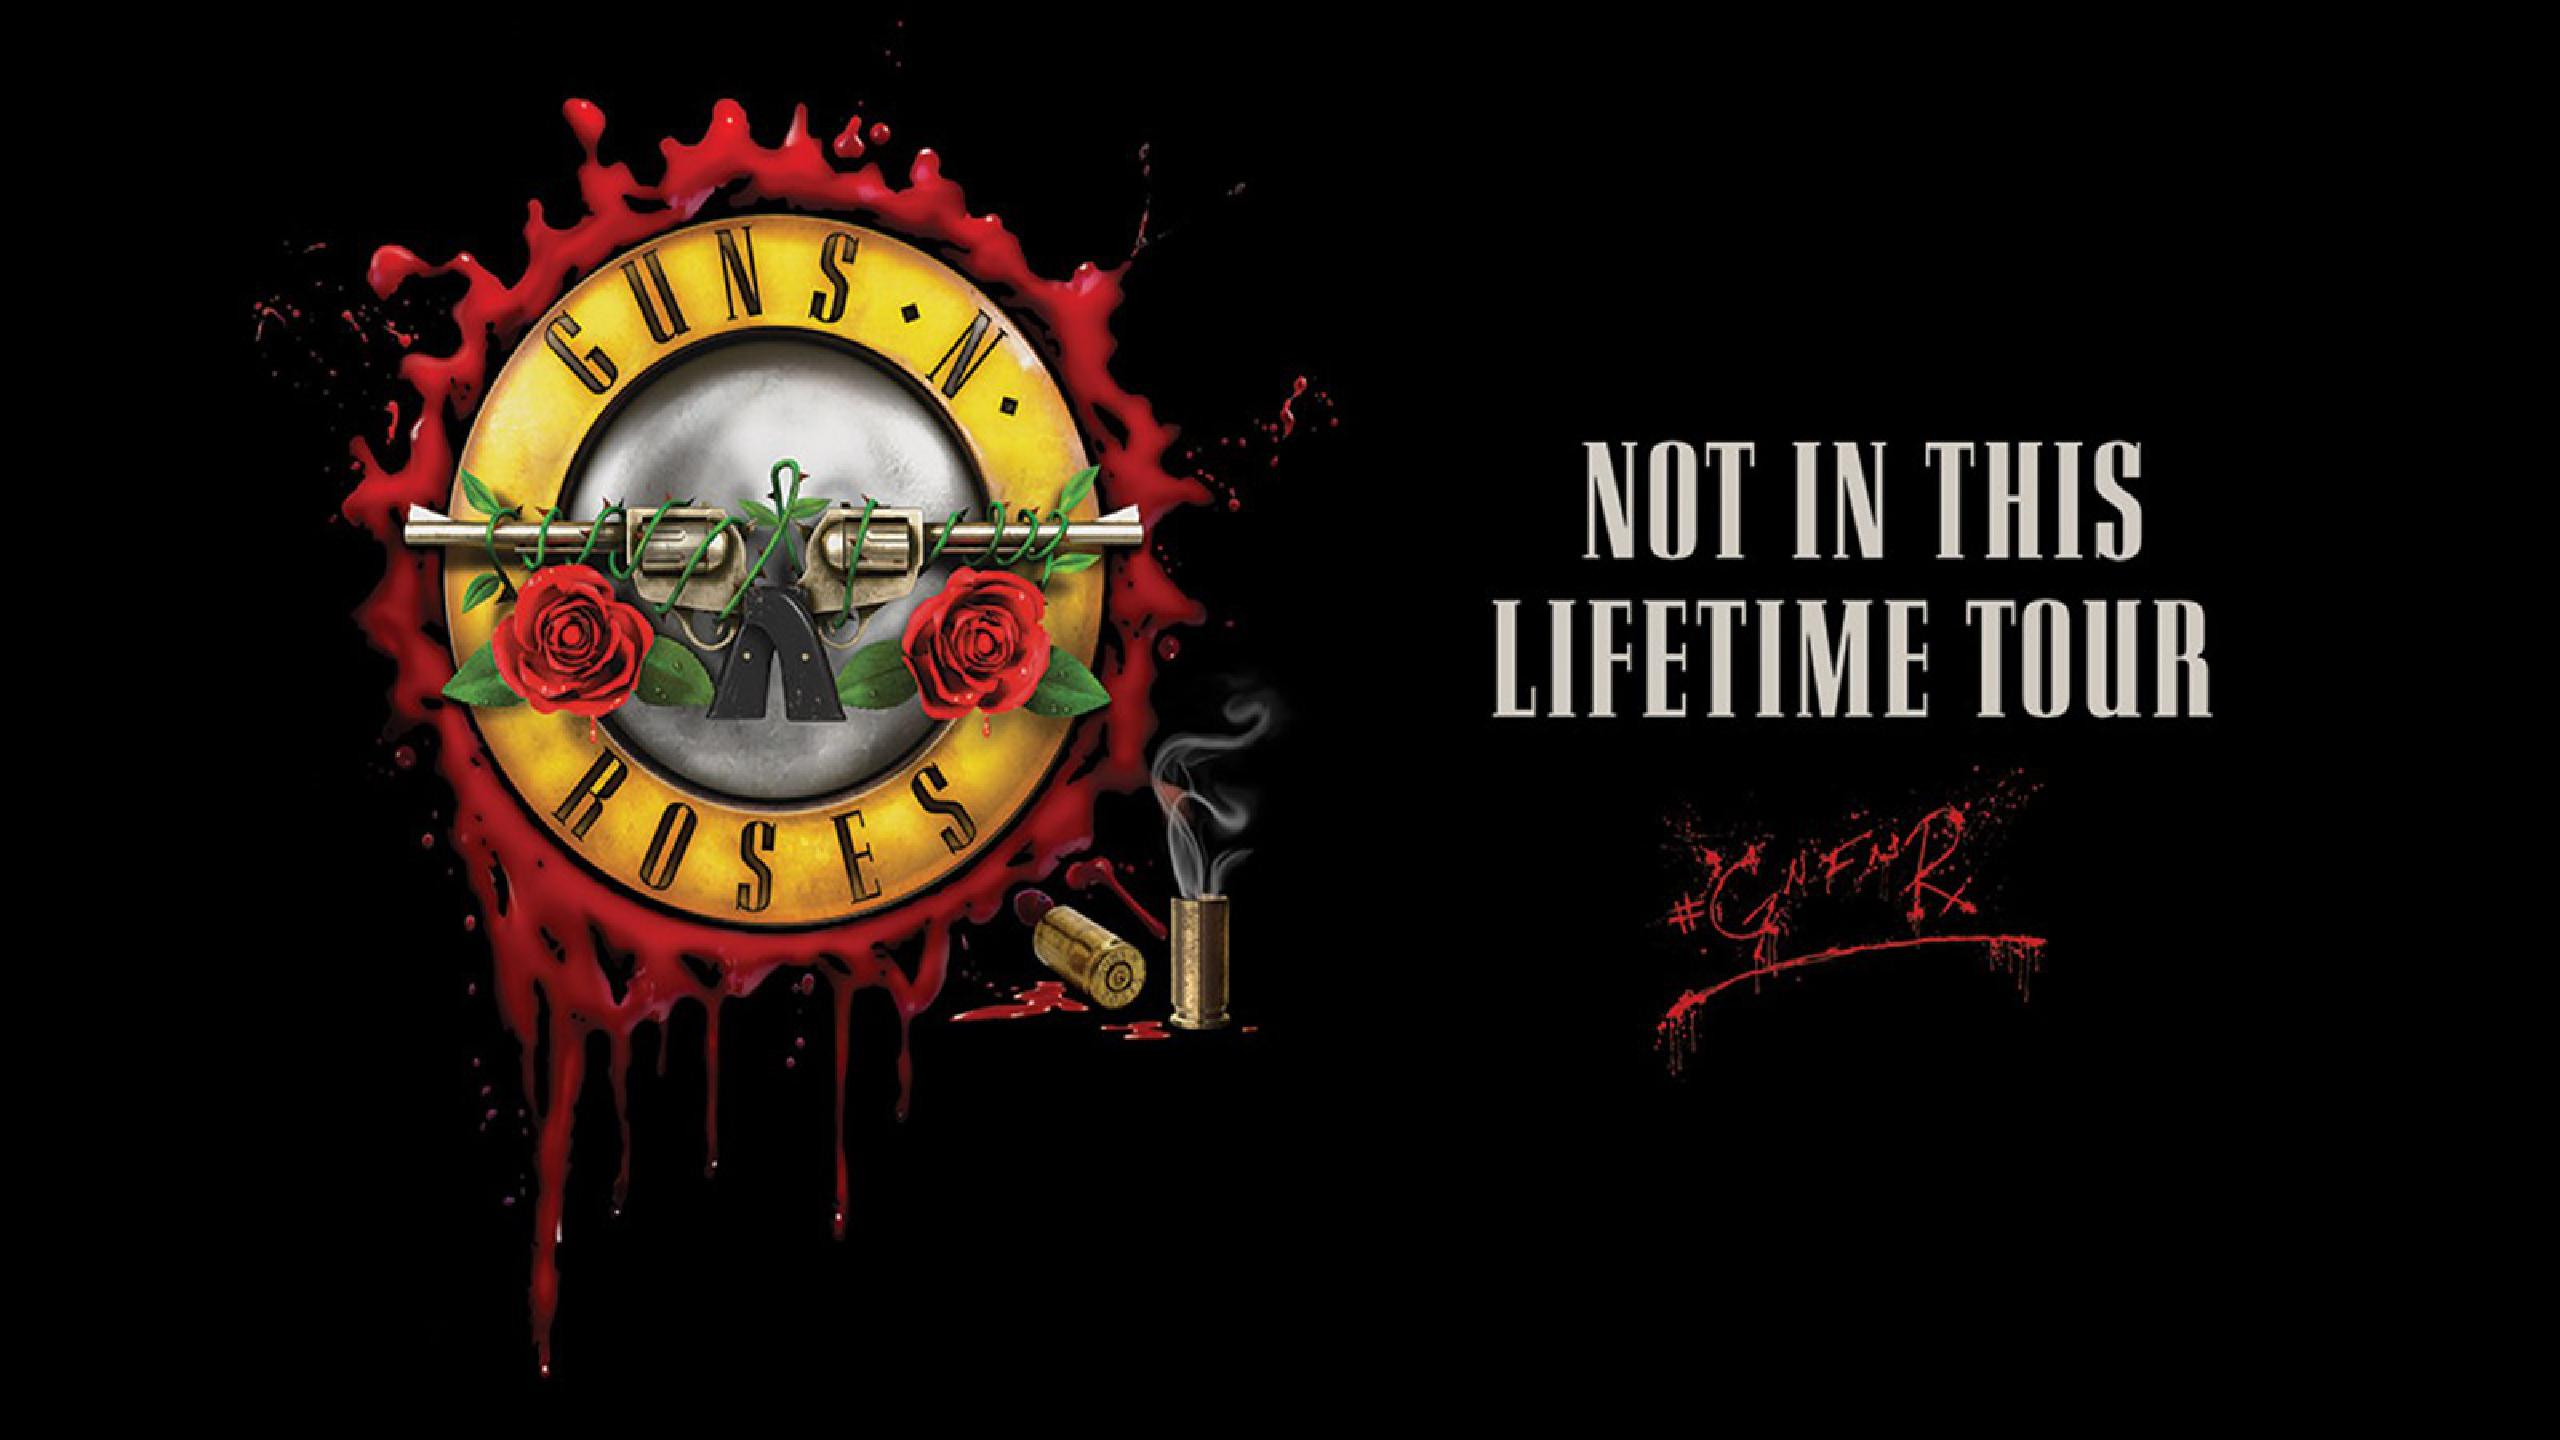 Guns N Roses Tickets Für 2017 2018 Tour Information über Konzerte